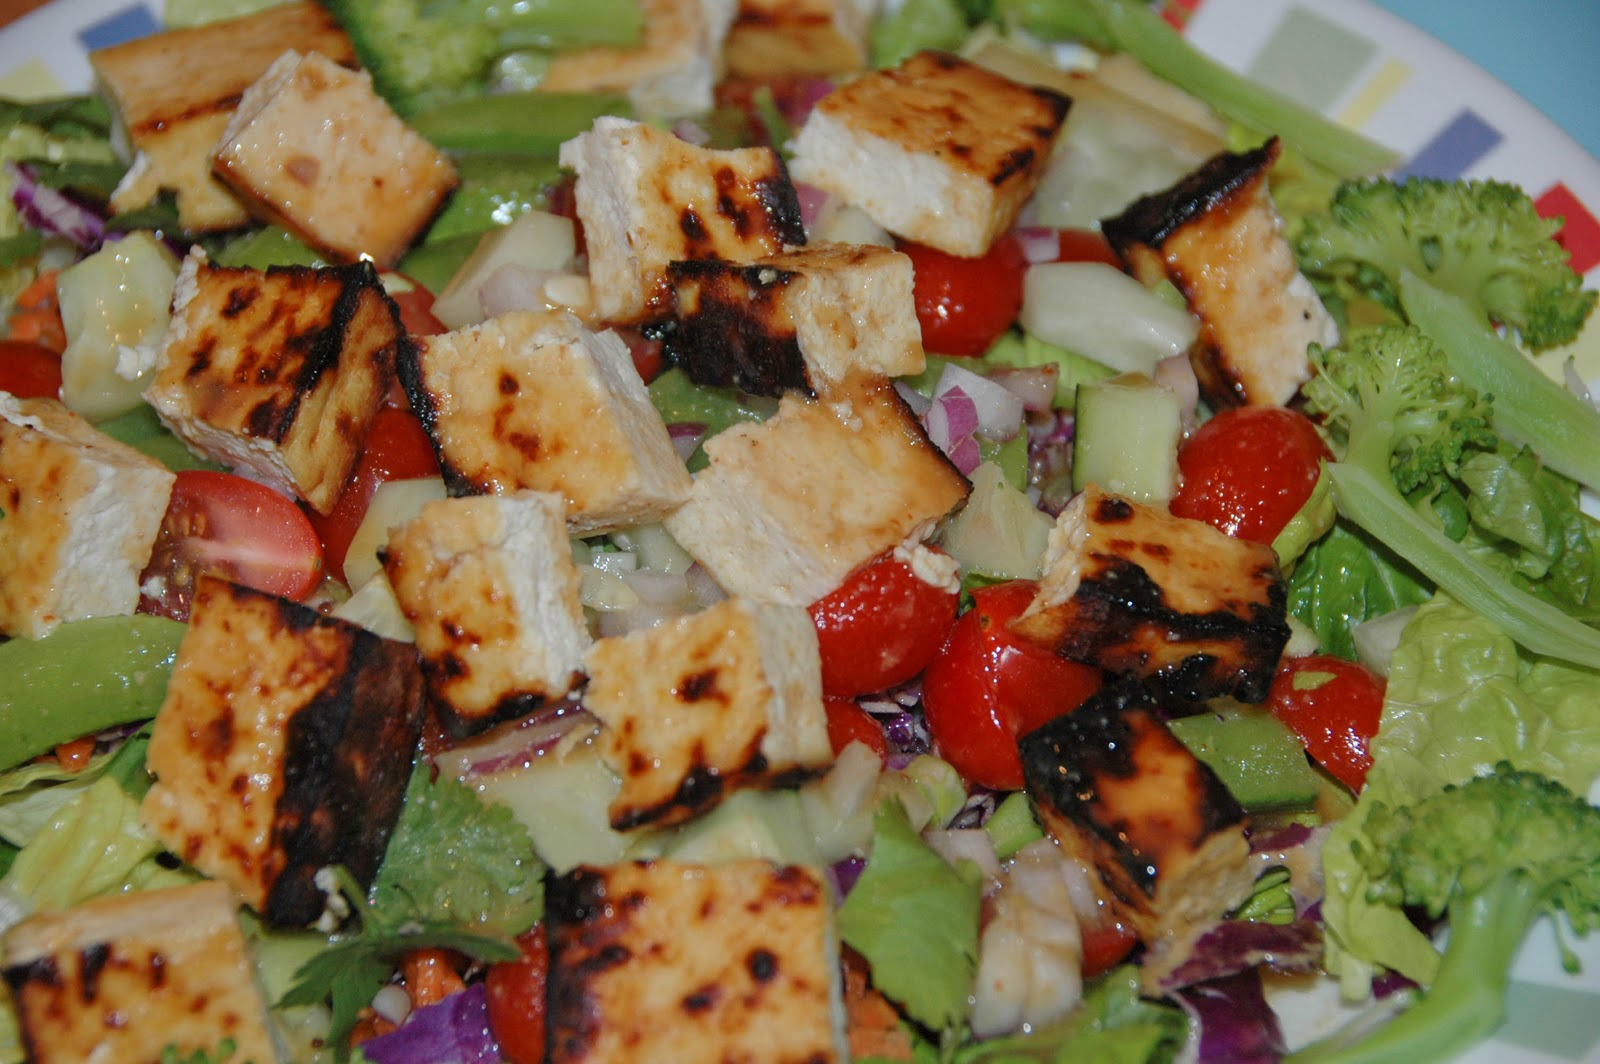 The other day I saw a recipe for Grilled Tofu Salad with Miso Dressing ...